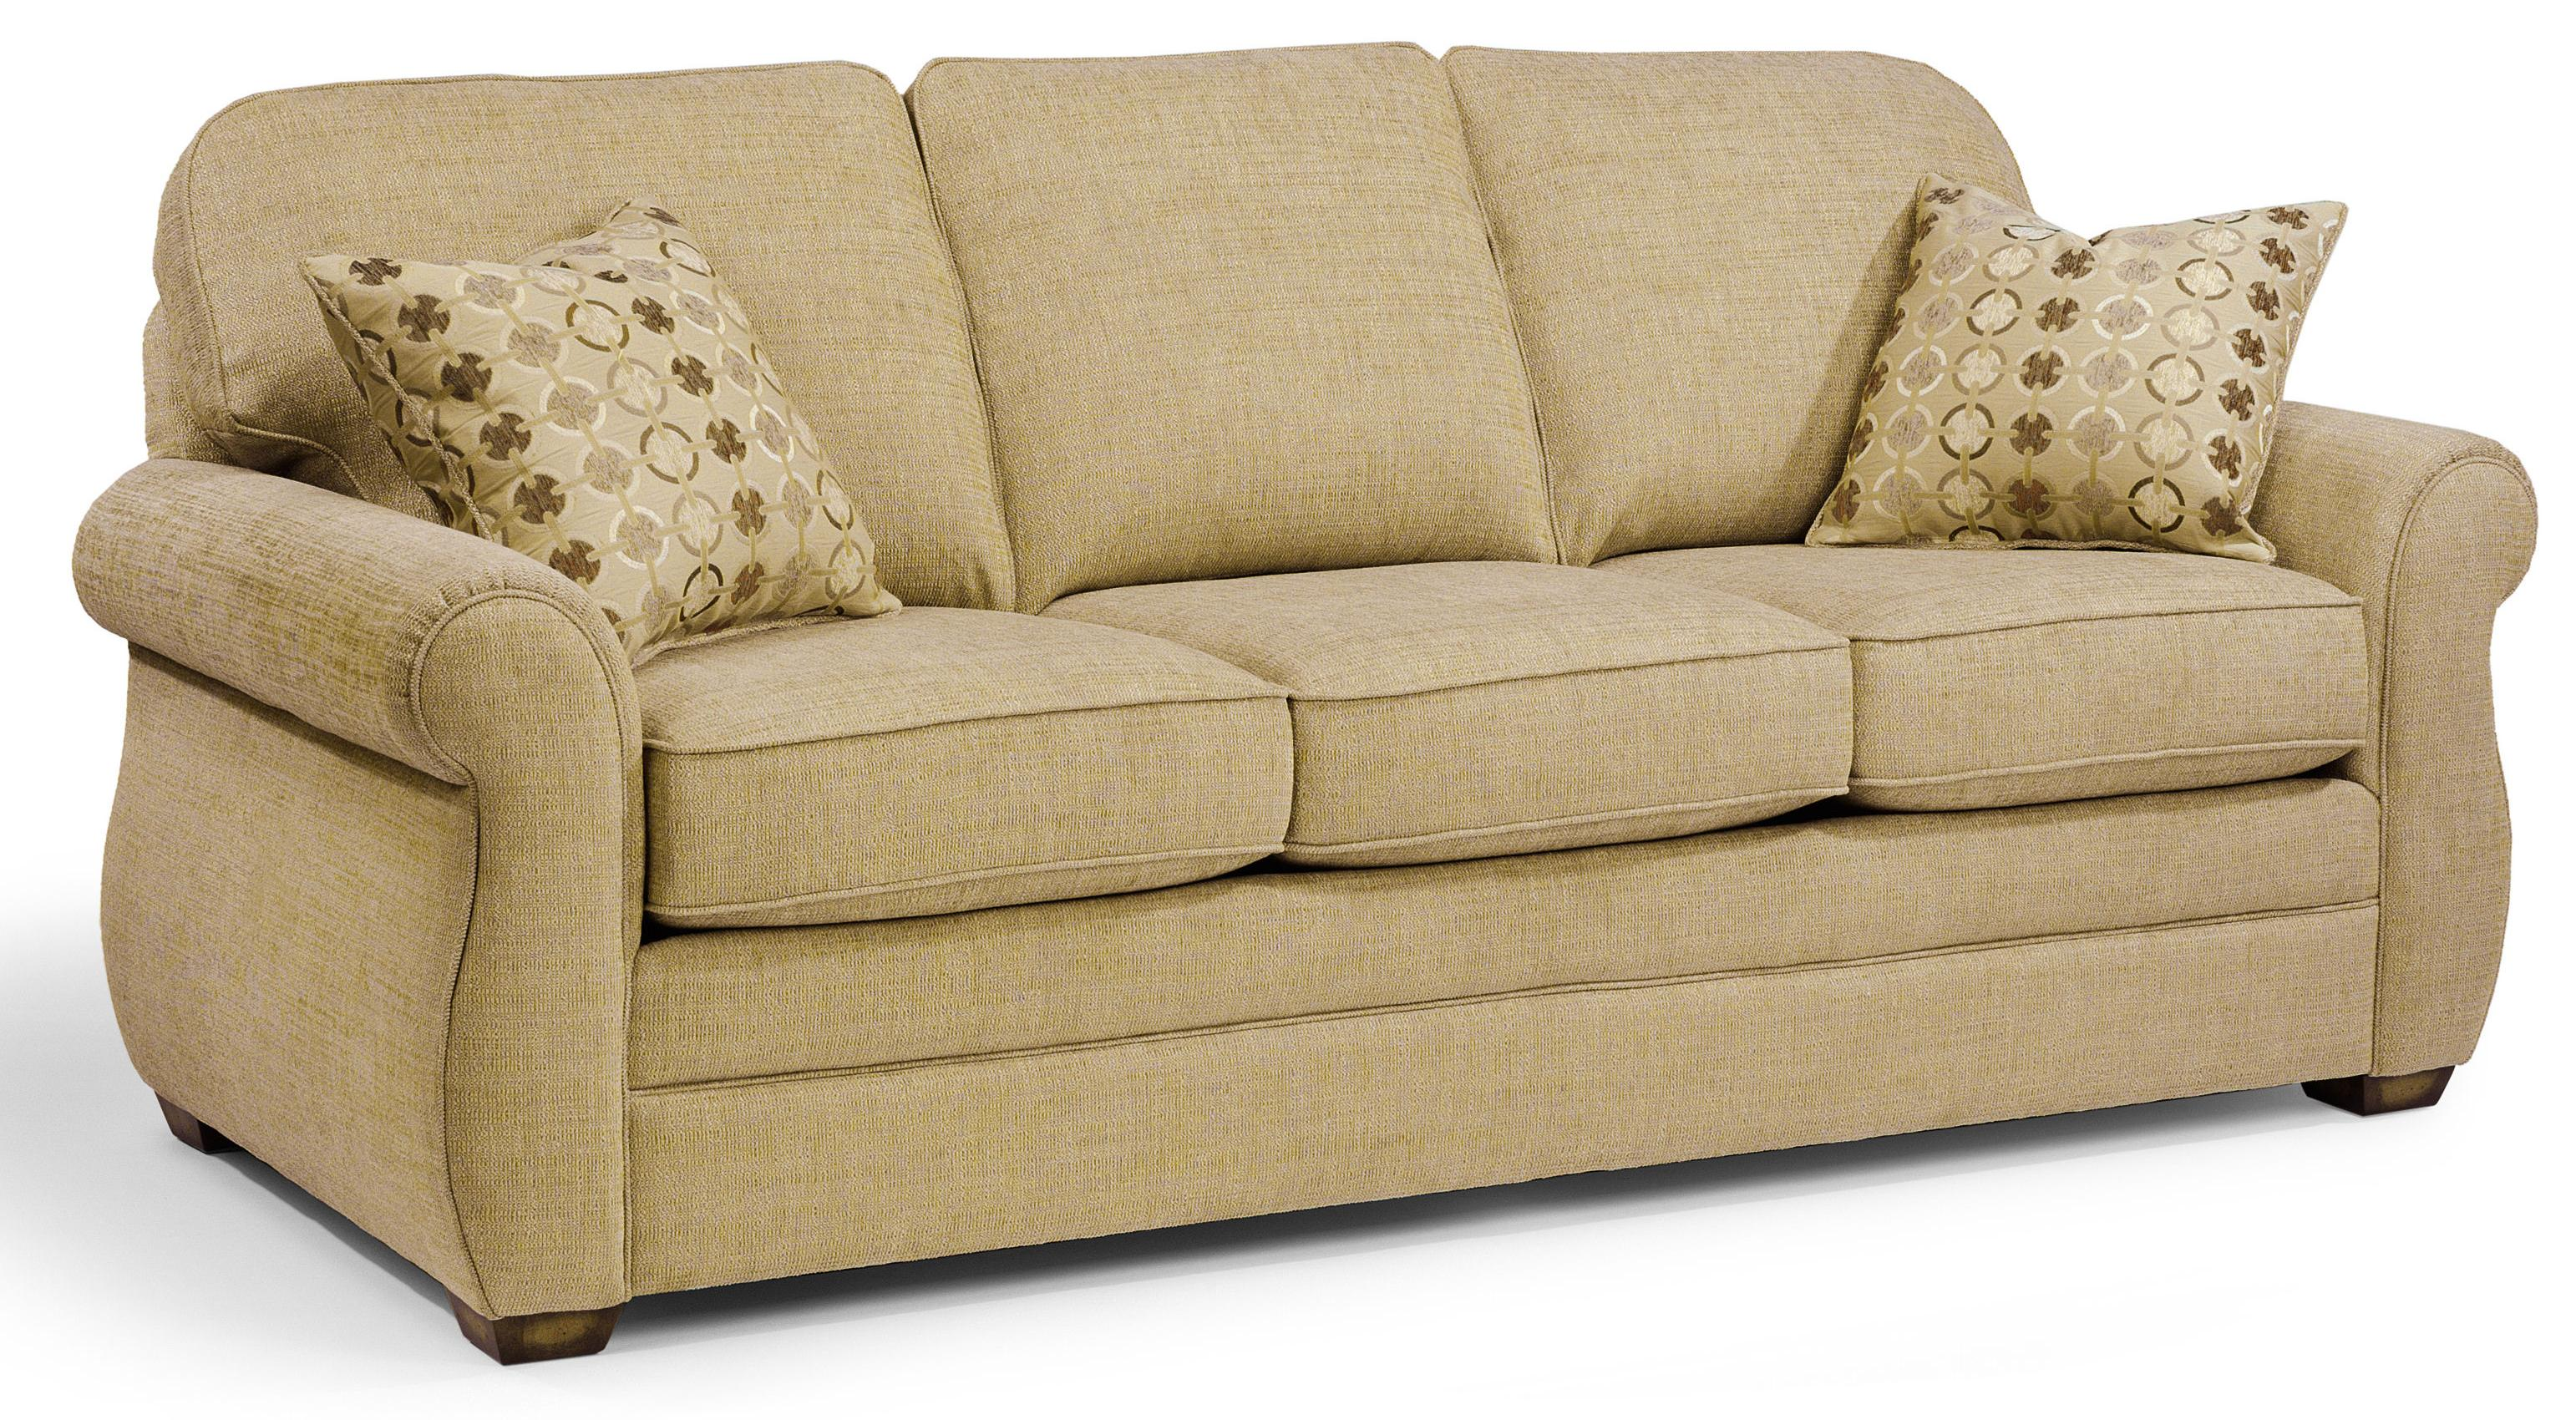 flexsteel sofa flexsteel whitney sofa - item number: 5643-31 TBZRJQA